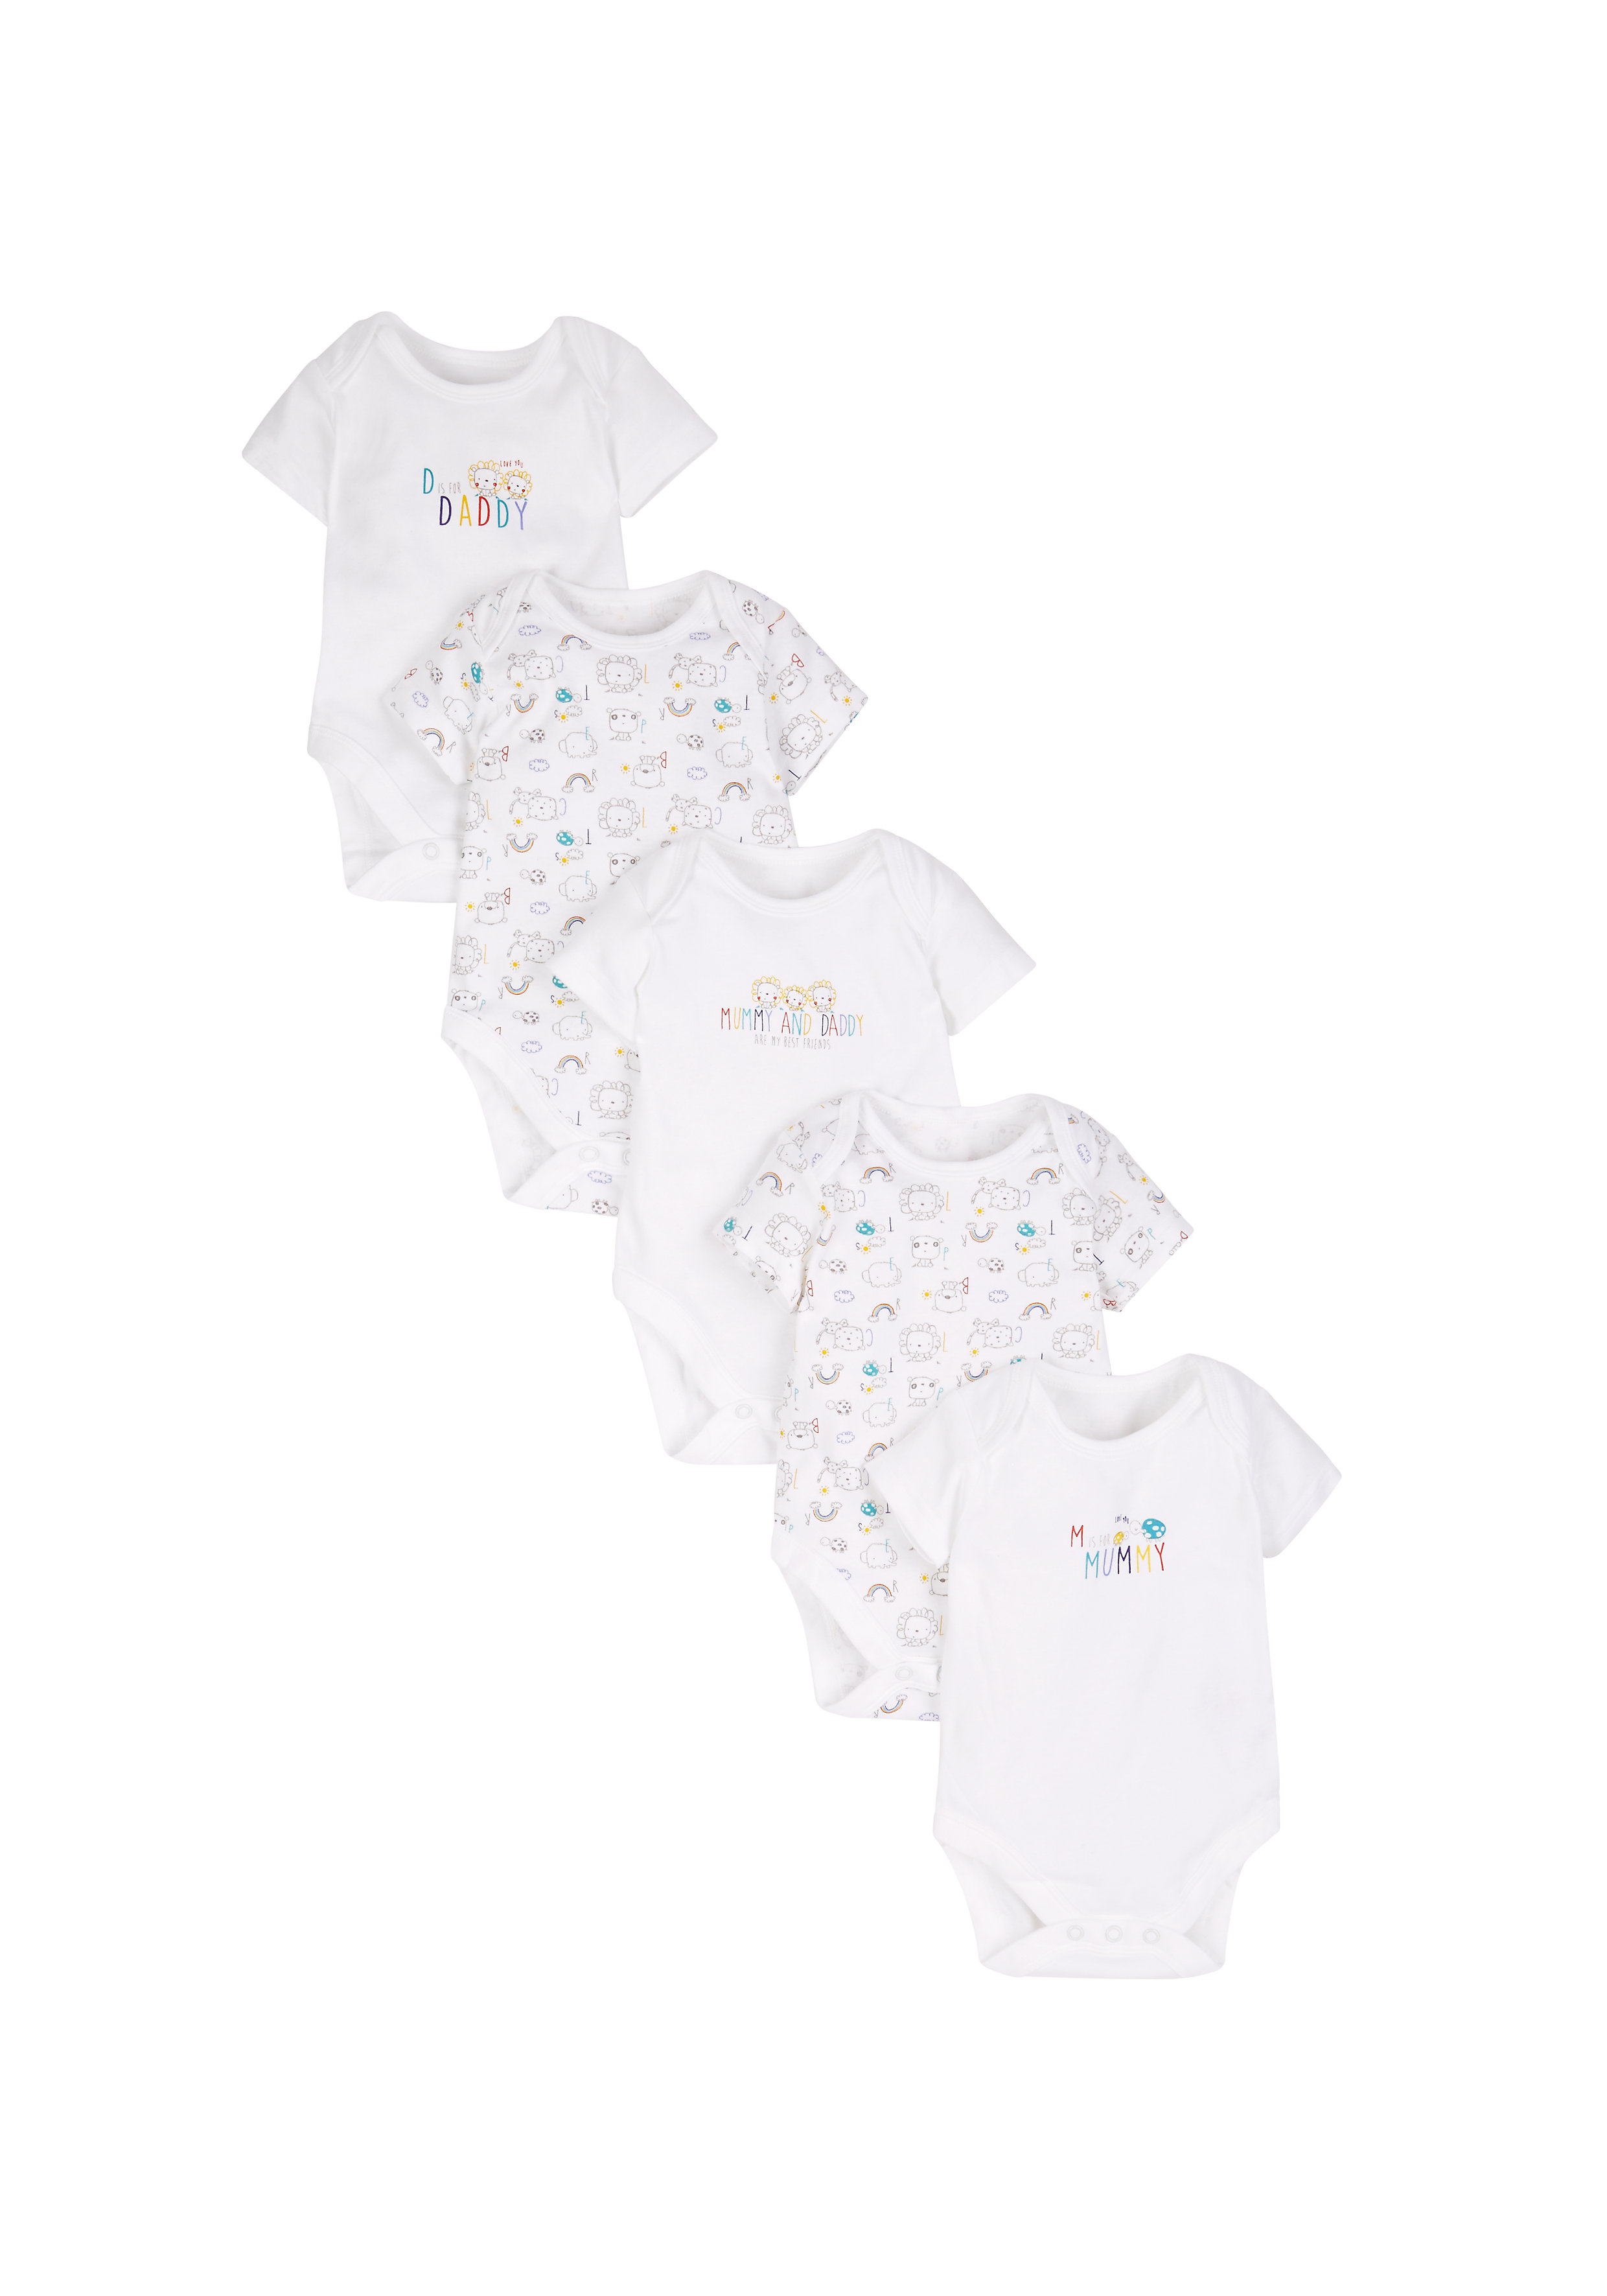 Mothercare | Unisex Mummy And Daddy Bodysuits - Pack Of 5 - White